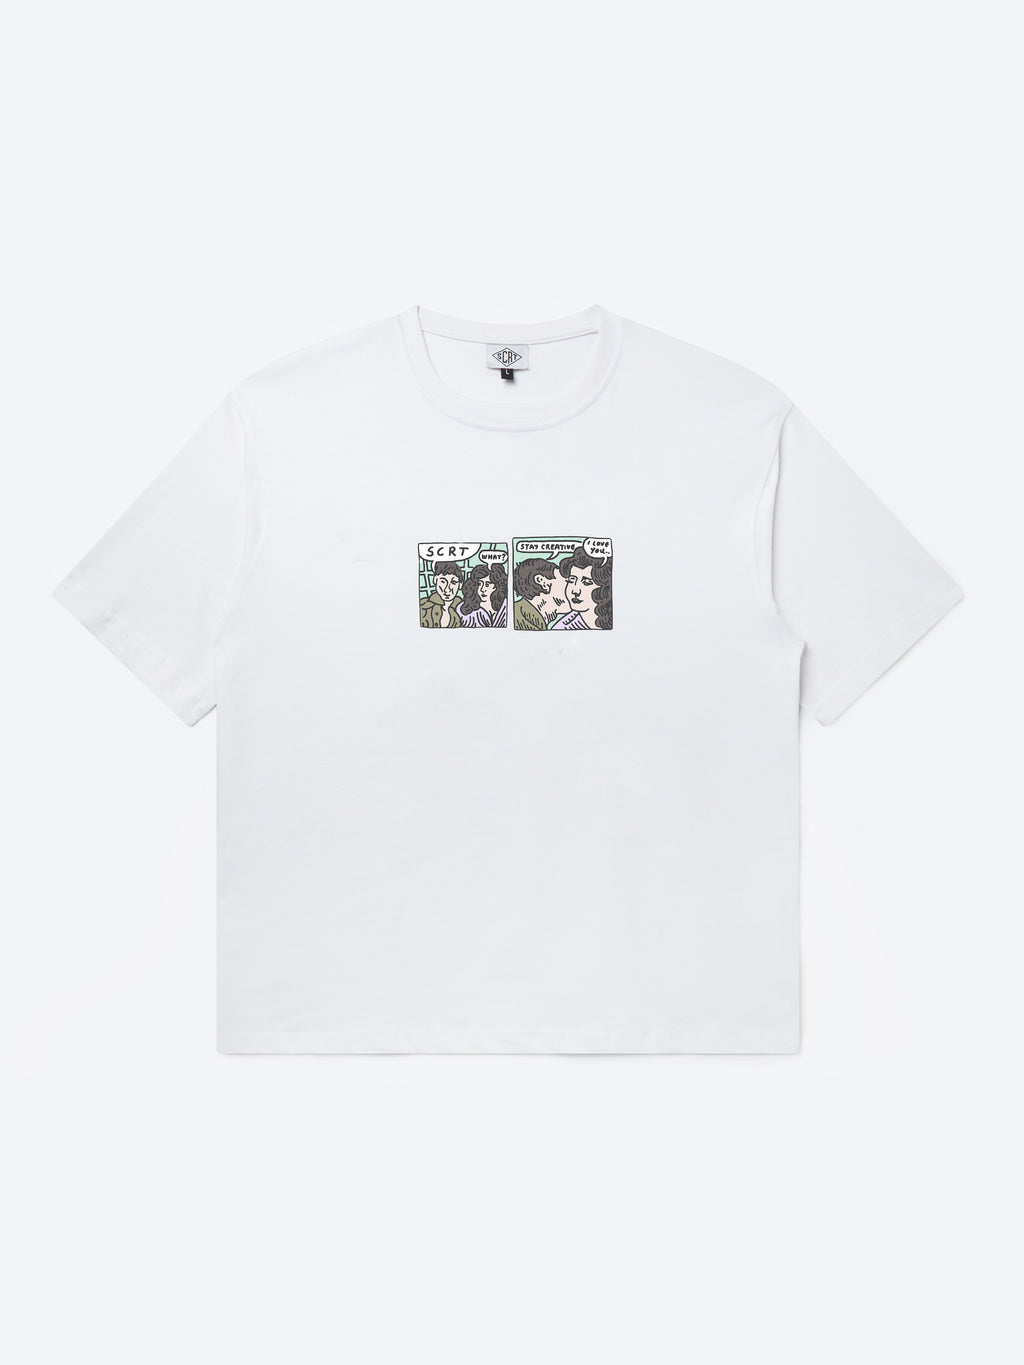 Lovers T-Shirt - White